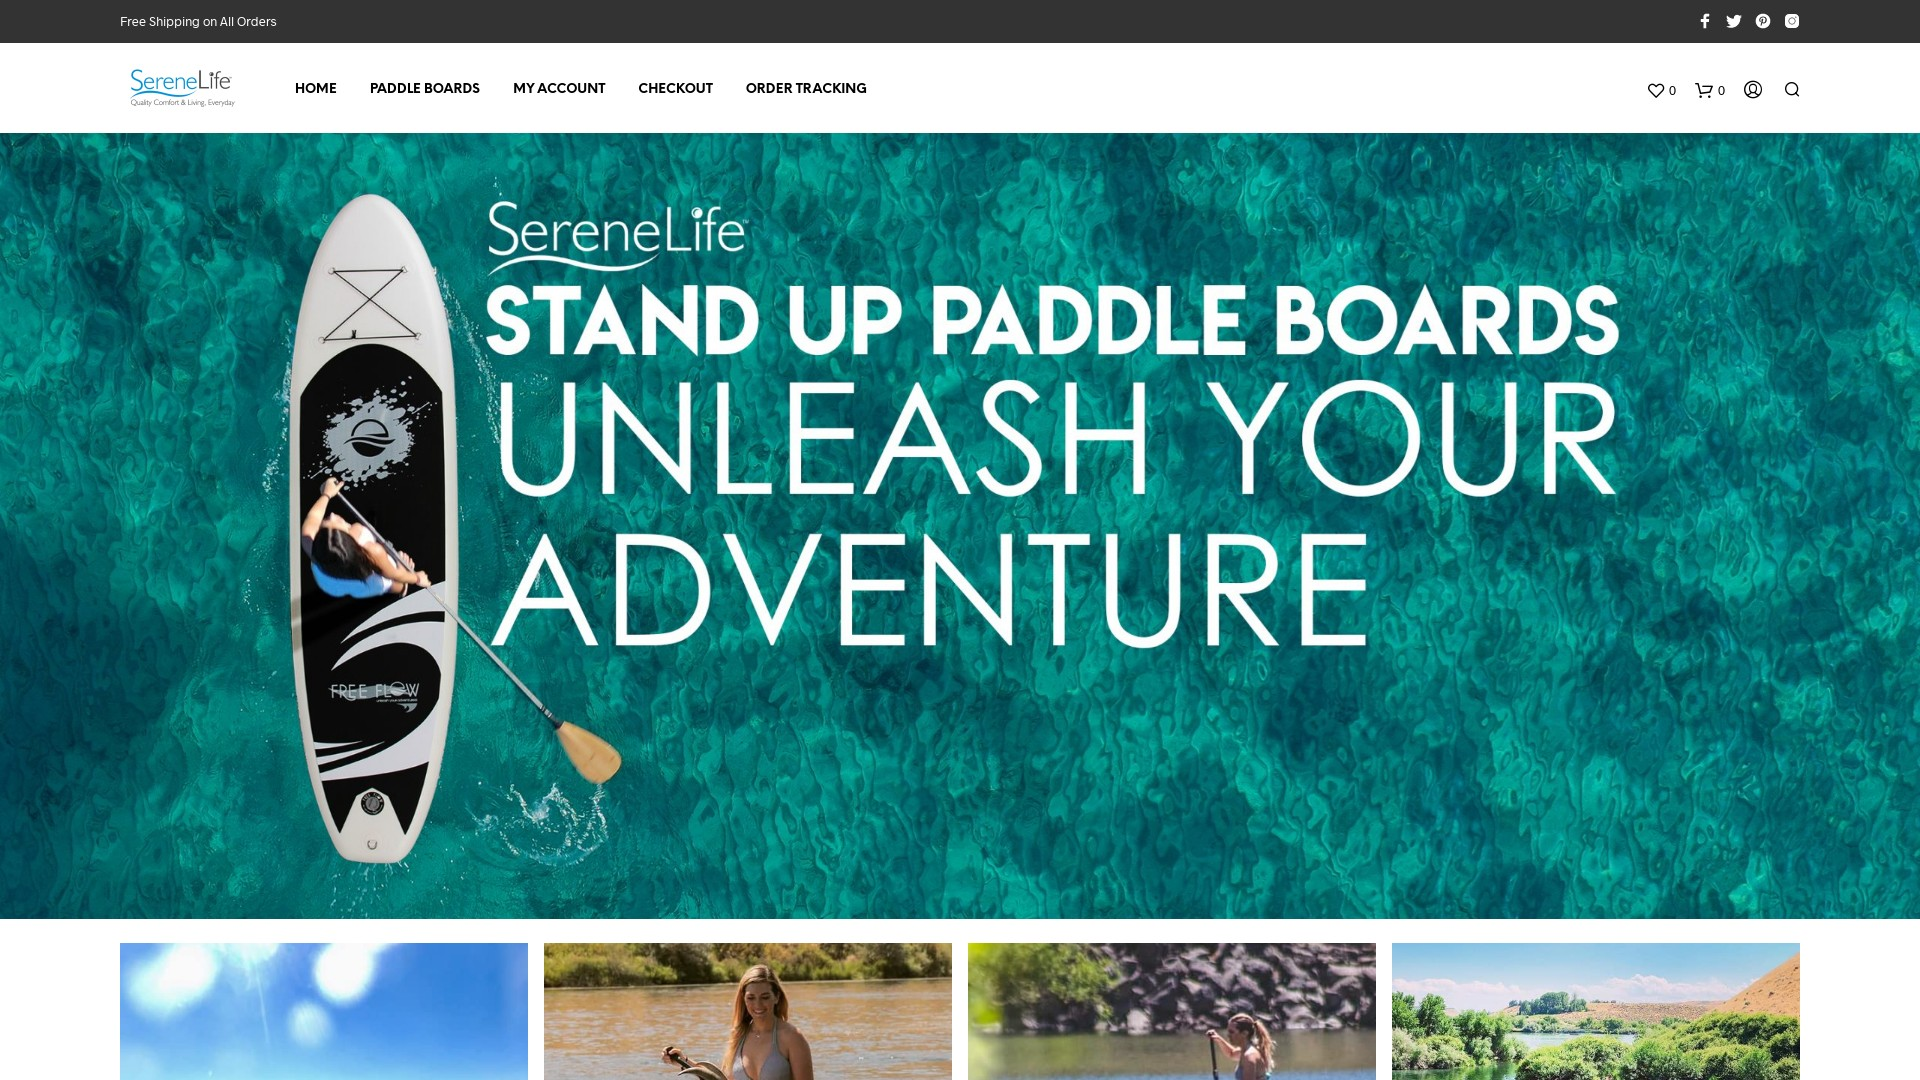 SereneLife Paddle Board Scam and Fake Online Stores